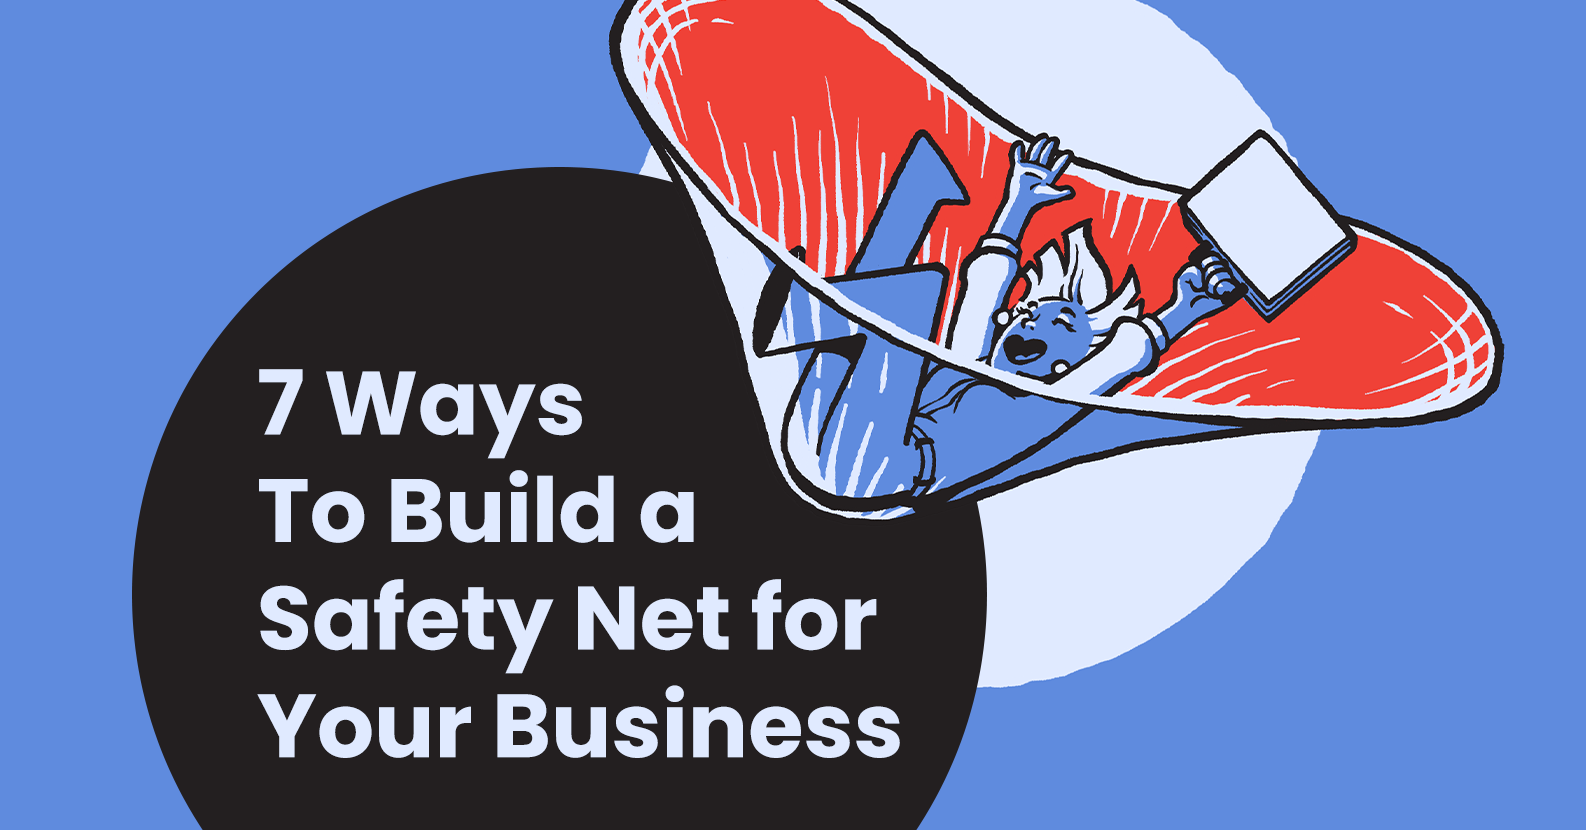 7 Ways To Build a Safety Net for Your Business